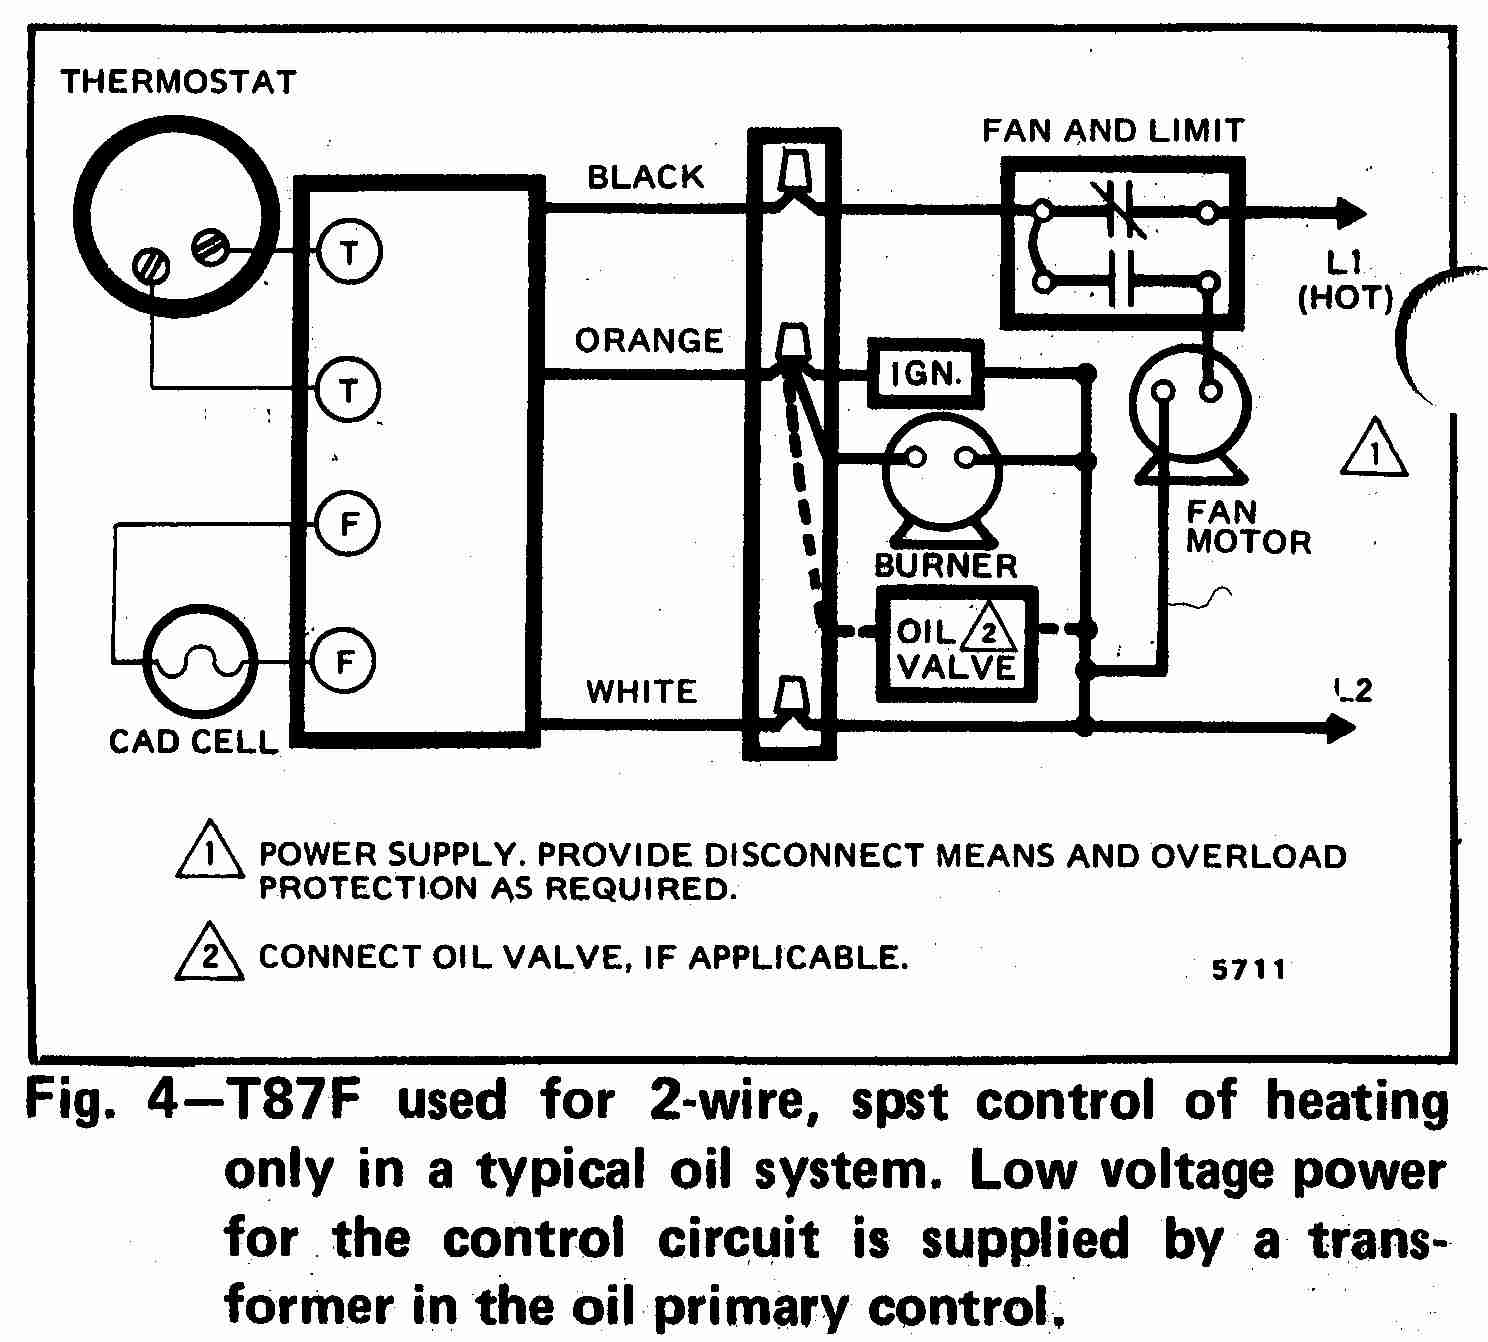 TT_T87F_0002_2W_DJF honeywell relay wiring diagram honeywell chronotherm iii wiring honeywell r845a wiring diagram at readyjetset.co